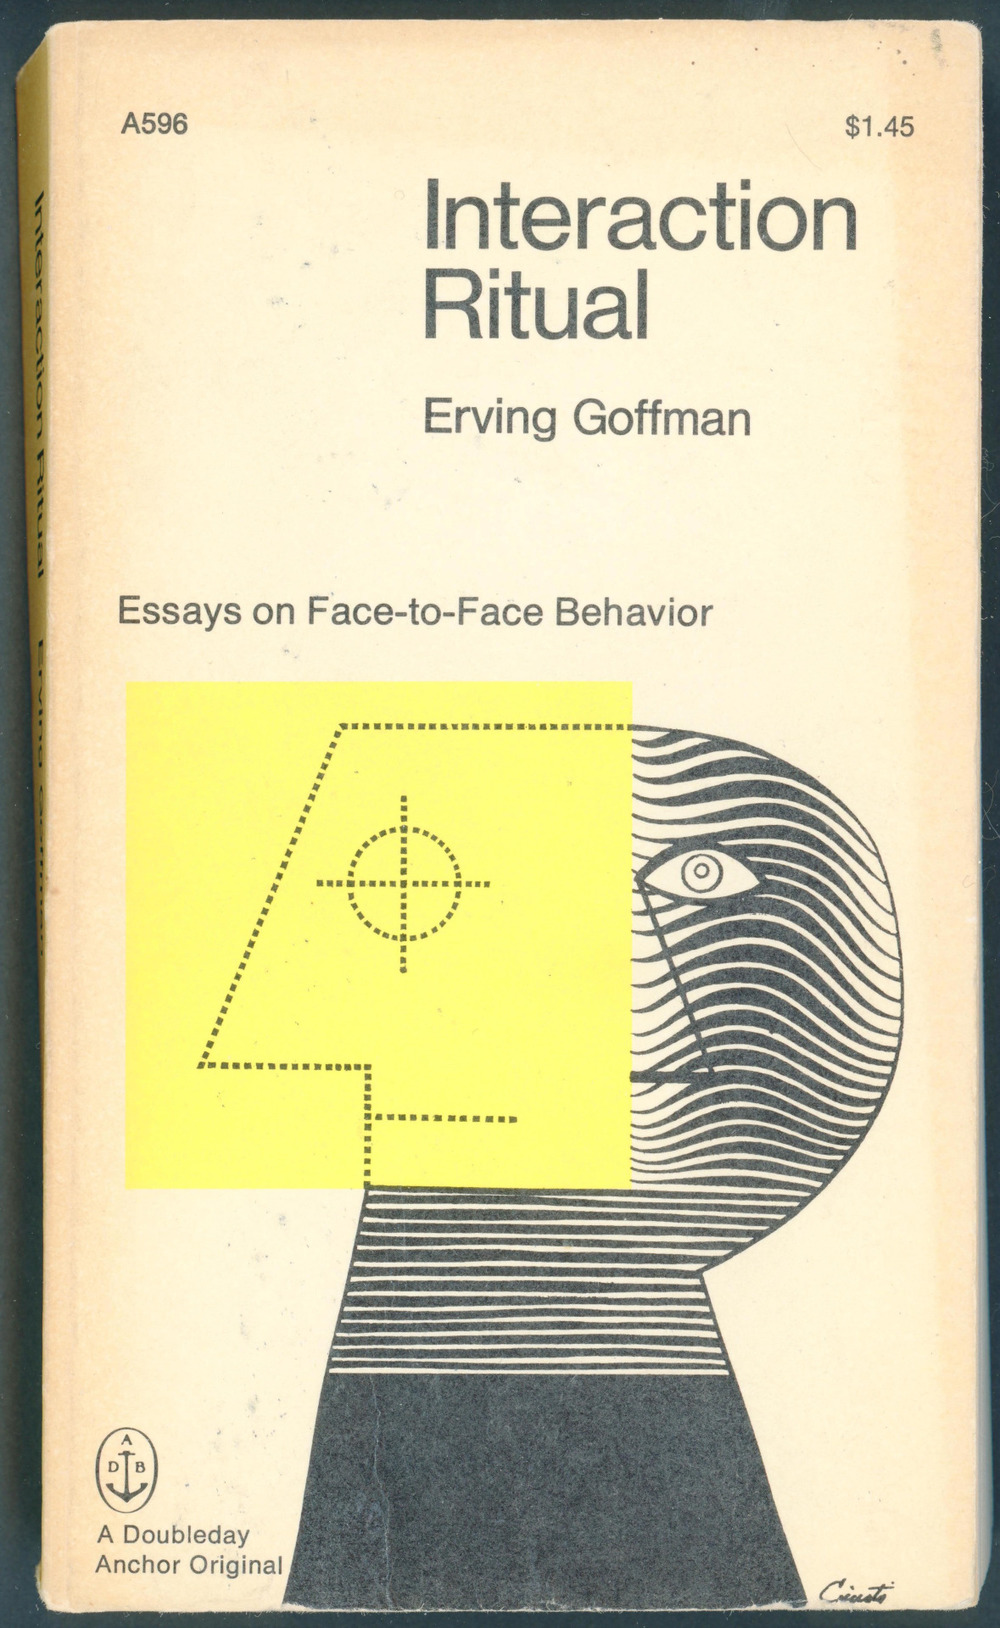 jellobiafrasays:  interaction ritual (1967 ed., cover design by george giusti)